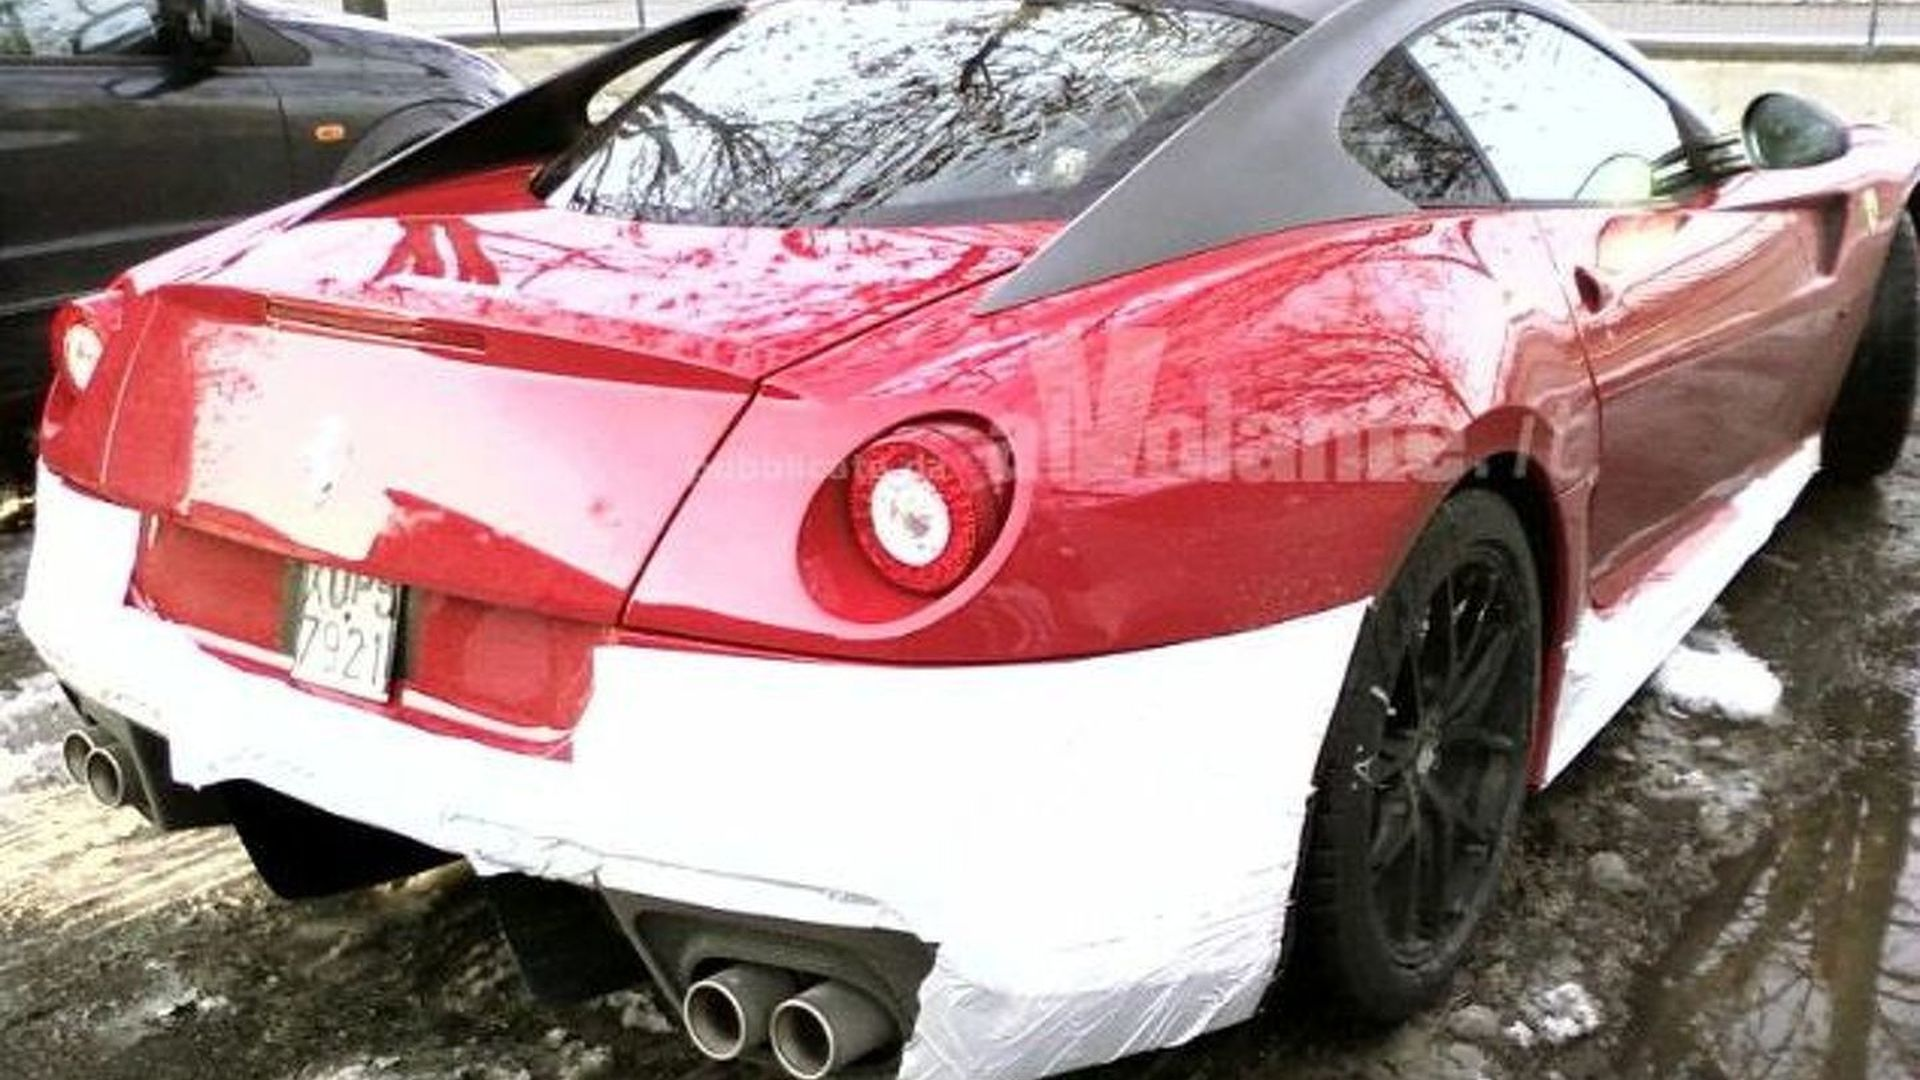 Ferrari 599 GTO Spied in Italy - Road Going 599XX